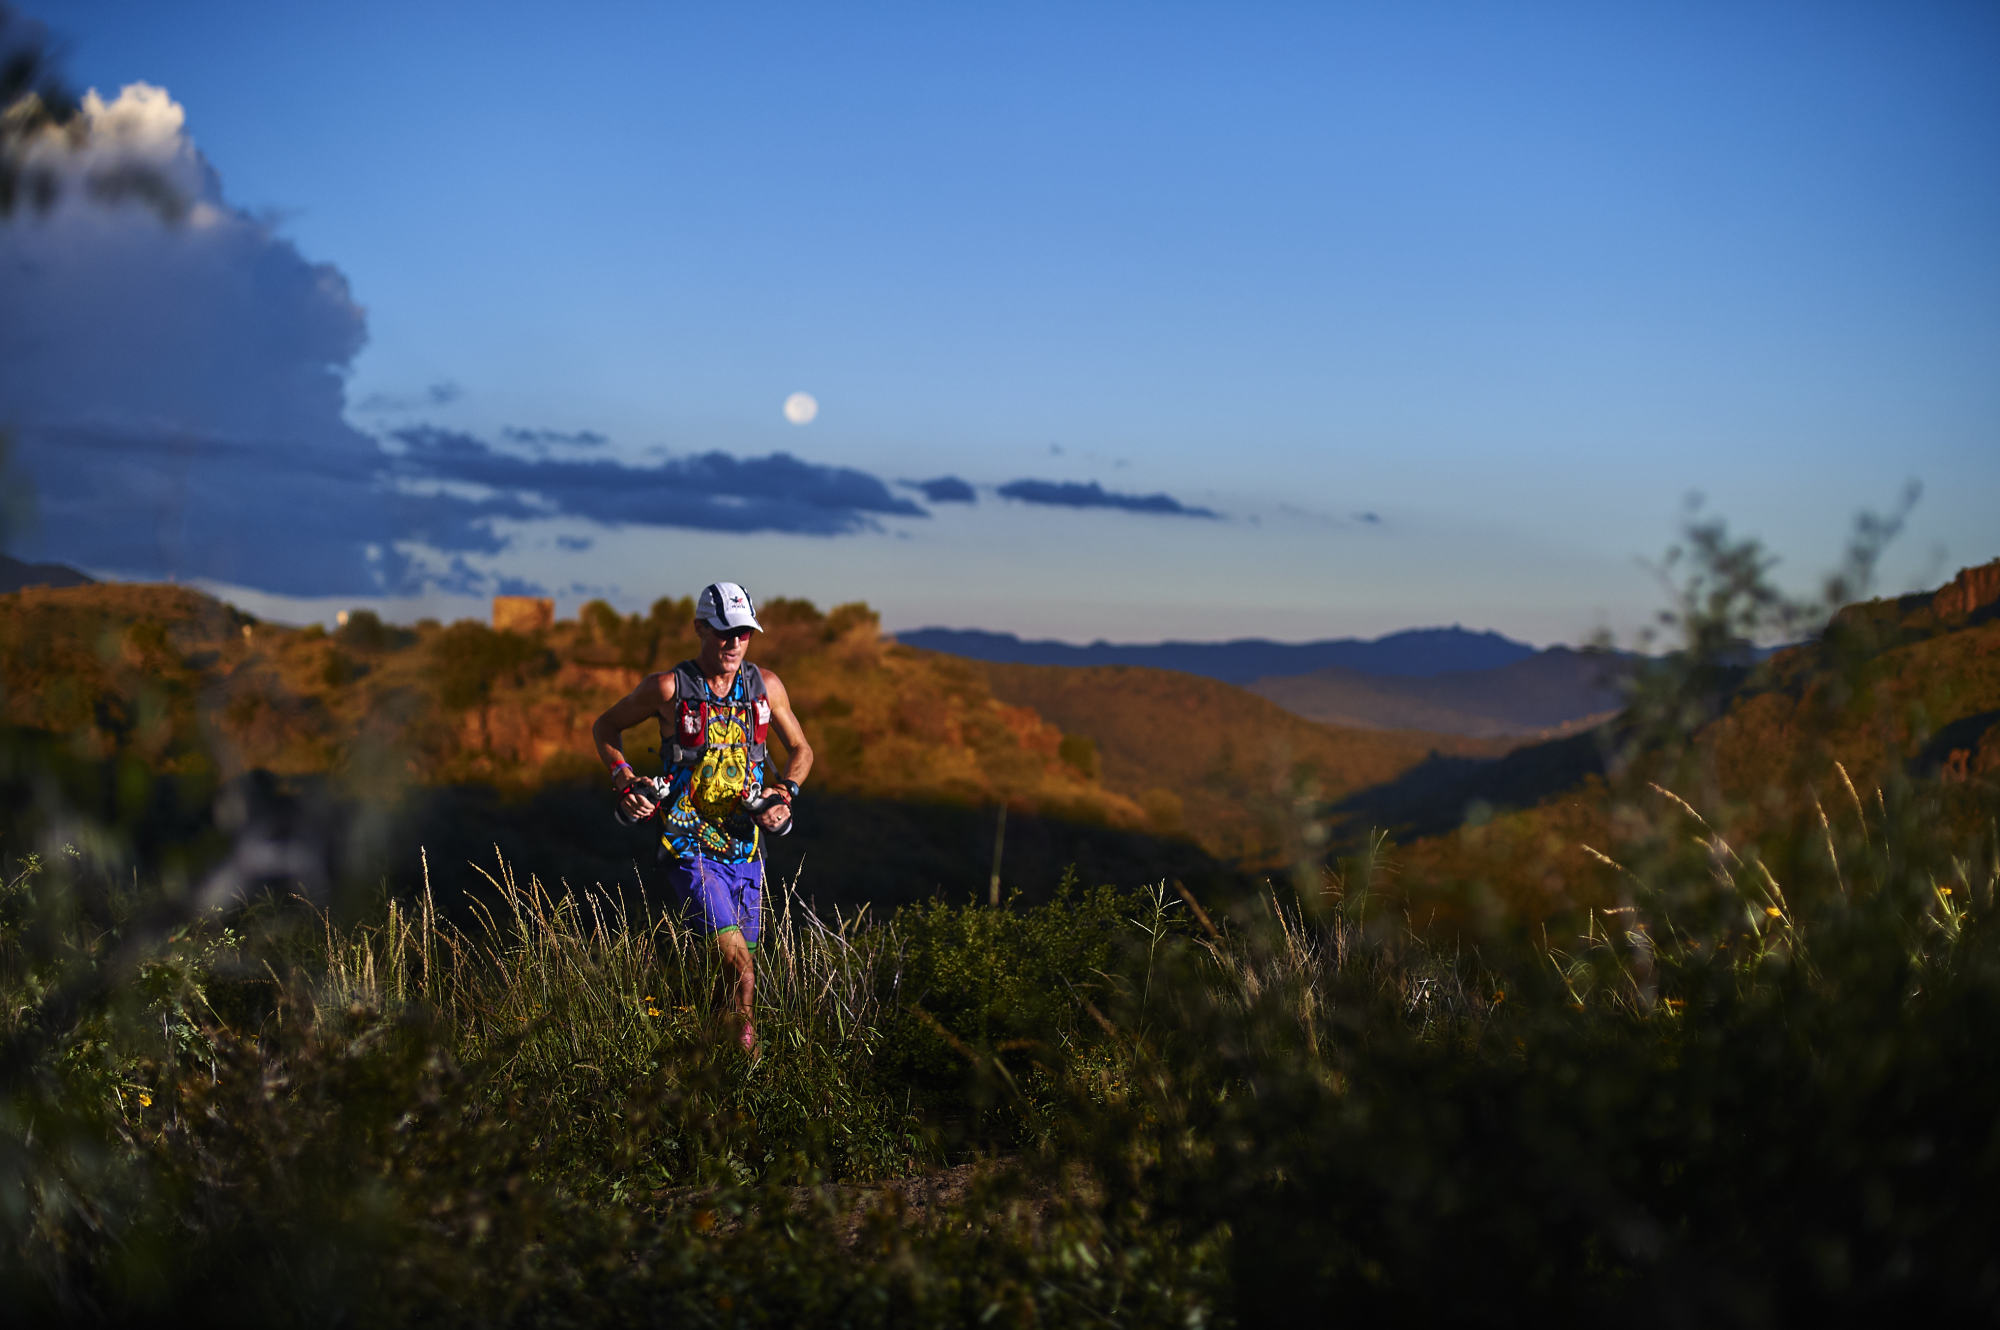 A trail runner passes my position at sunrise along the ridge in the Davis Mountains.